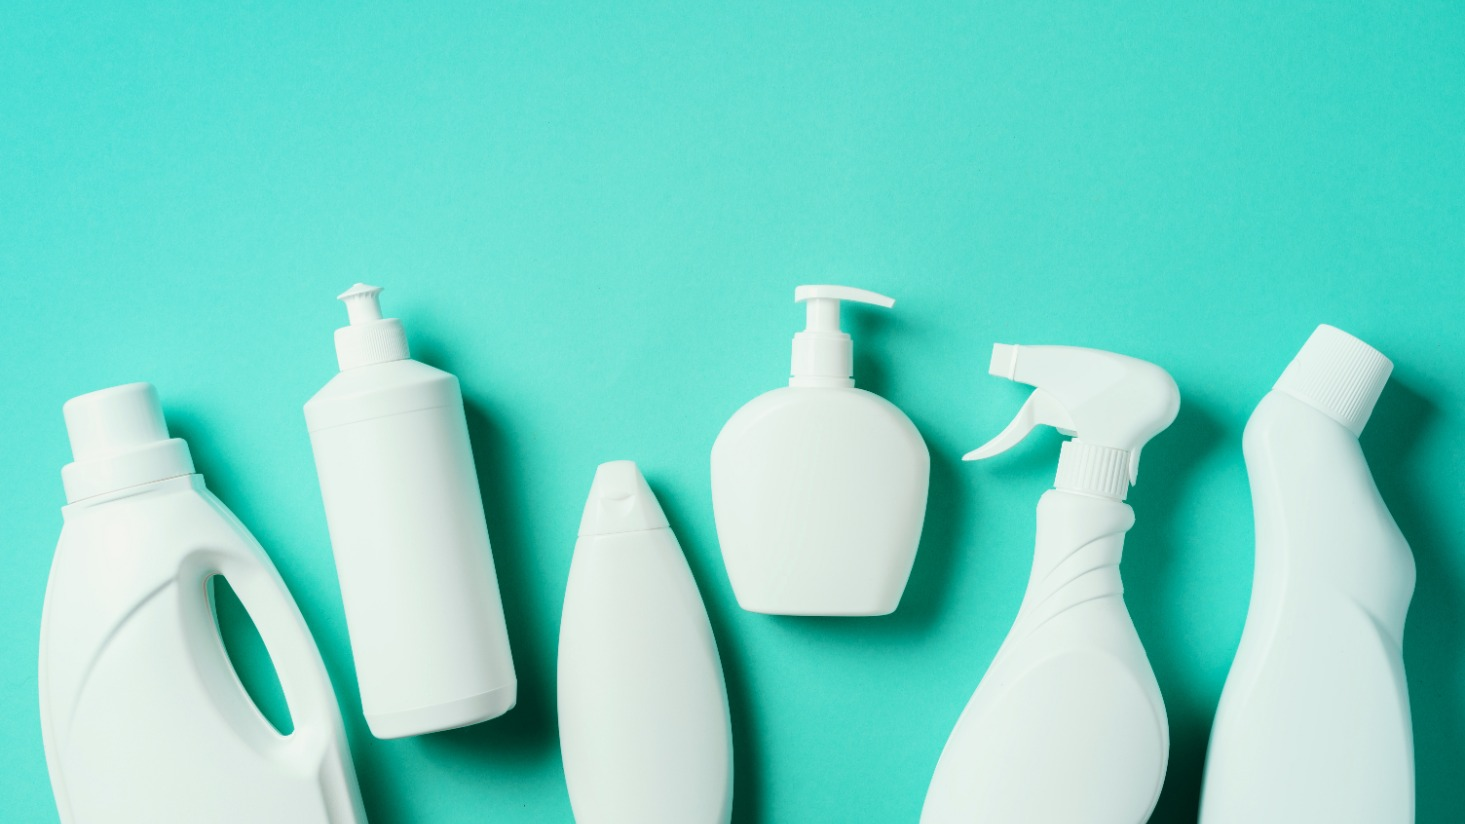 Are my cleaning and disinfection chemicals safe?